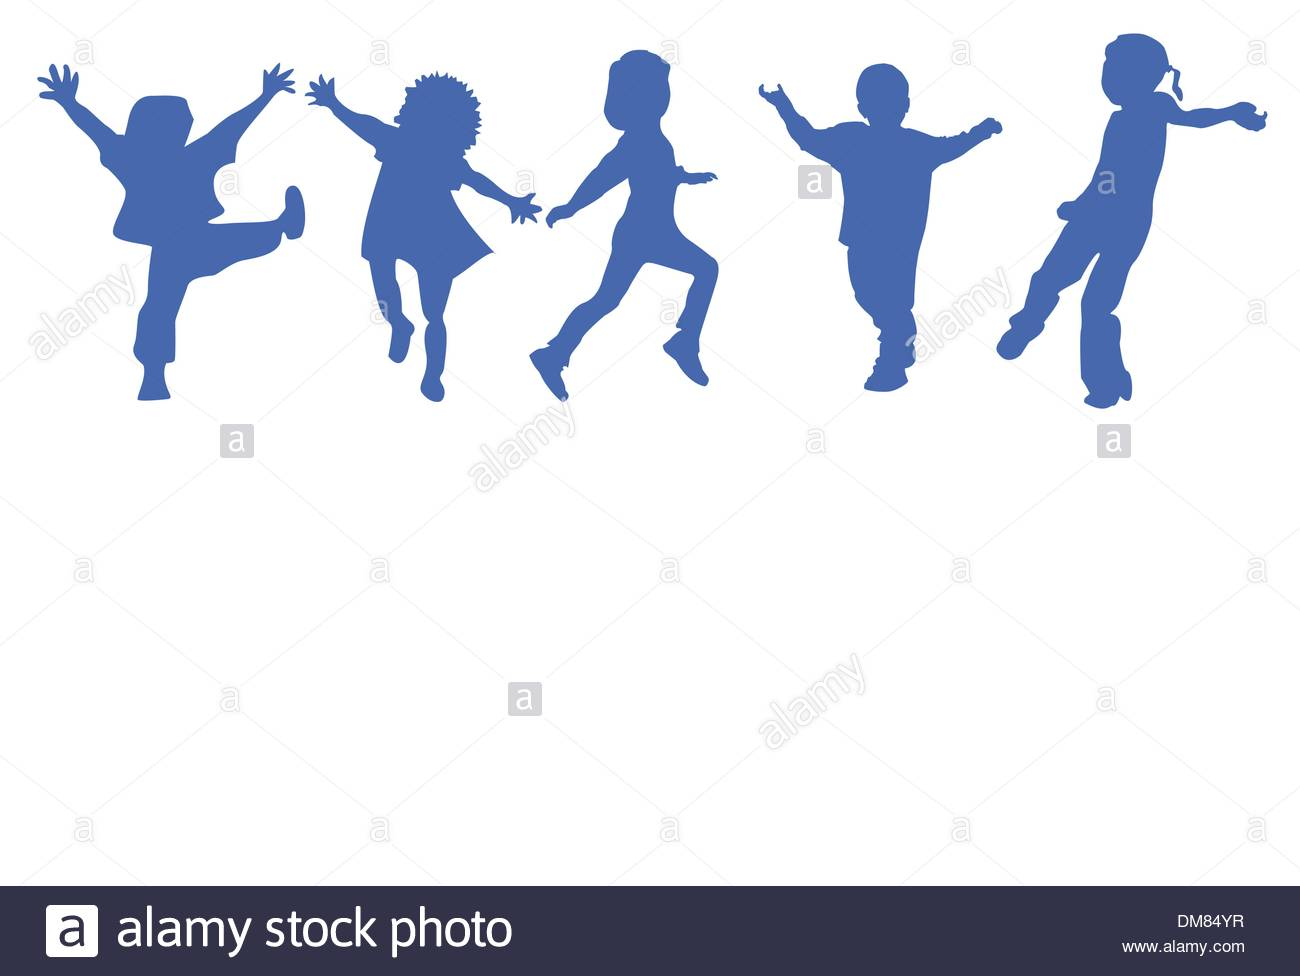 1300x976 Happy Kids Silhouettes Stock Vector Art Amp Illustration, Vector